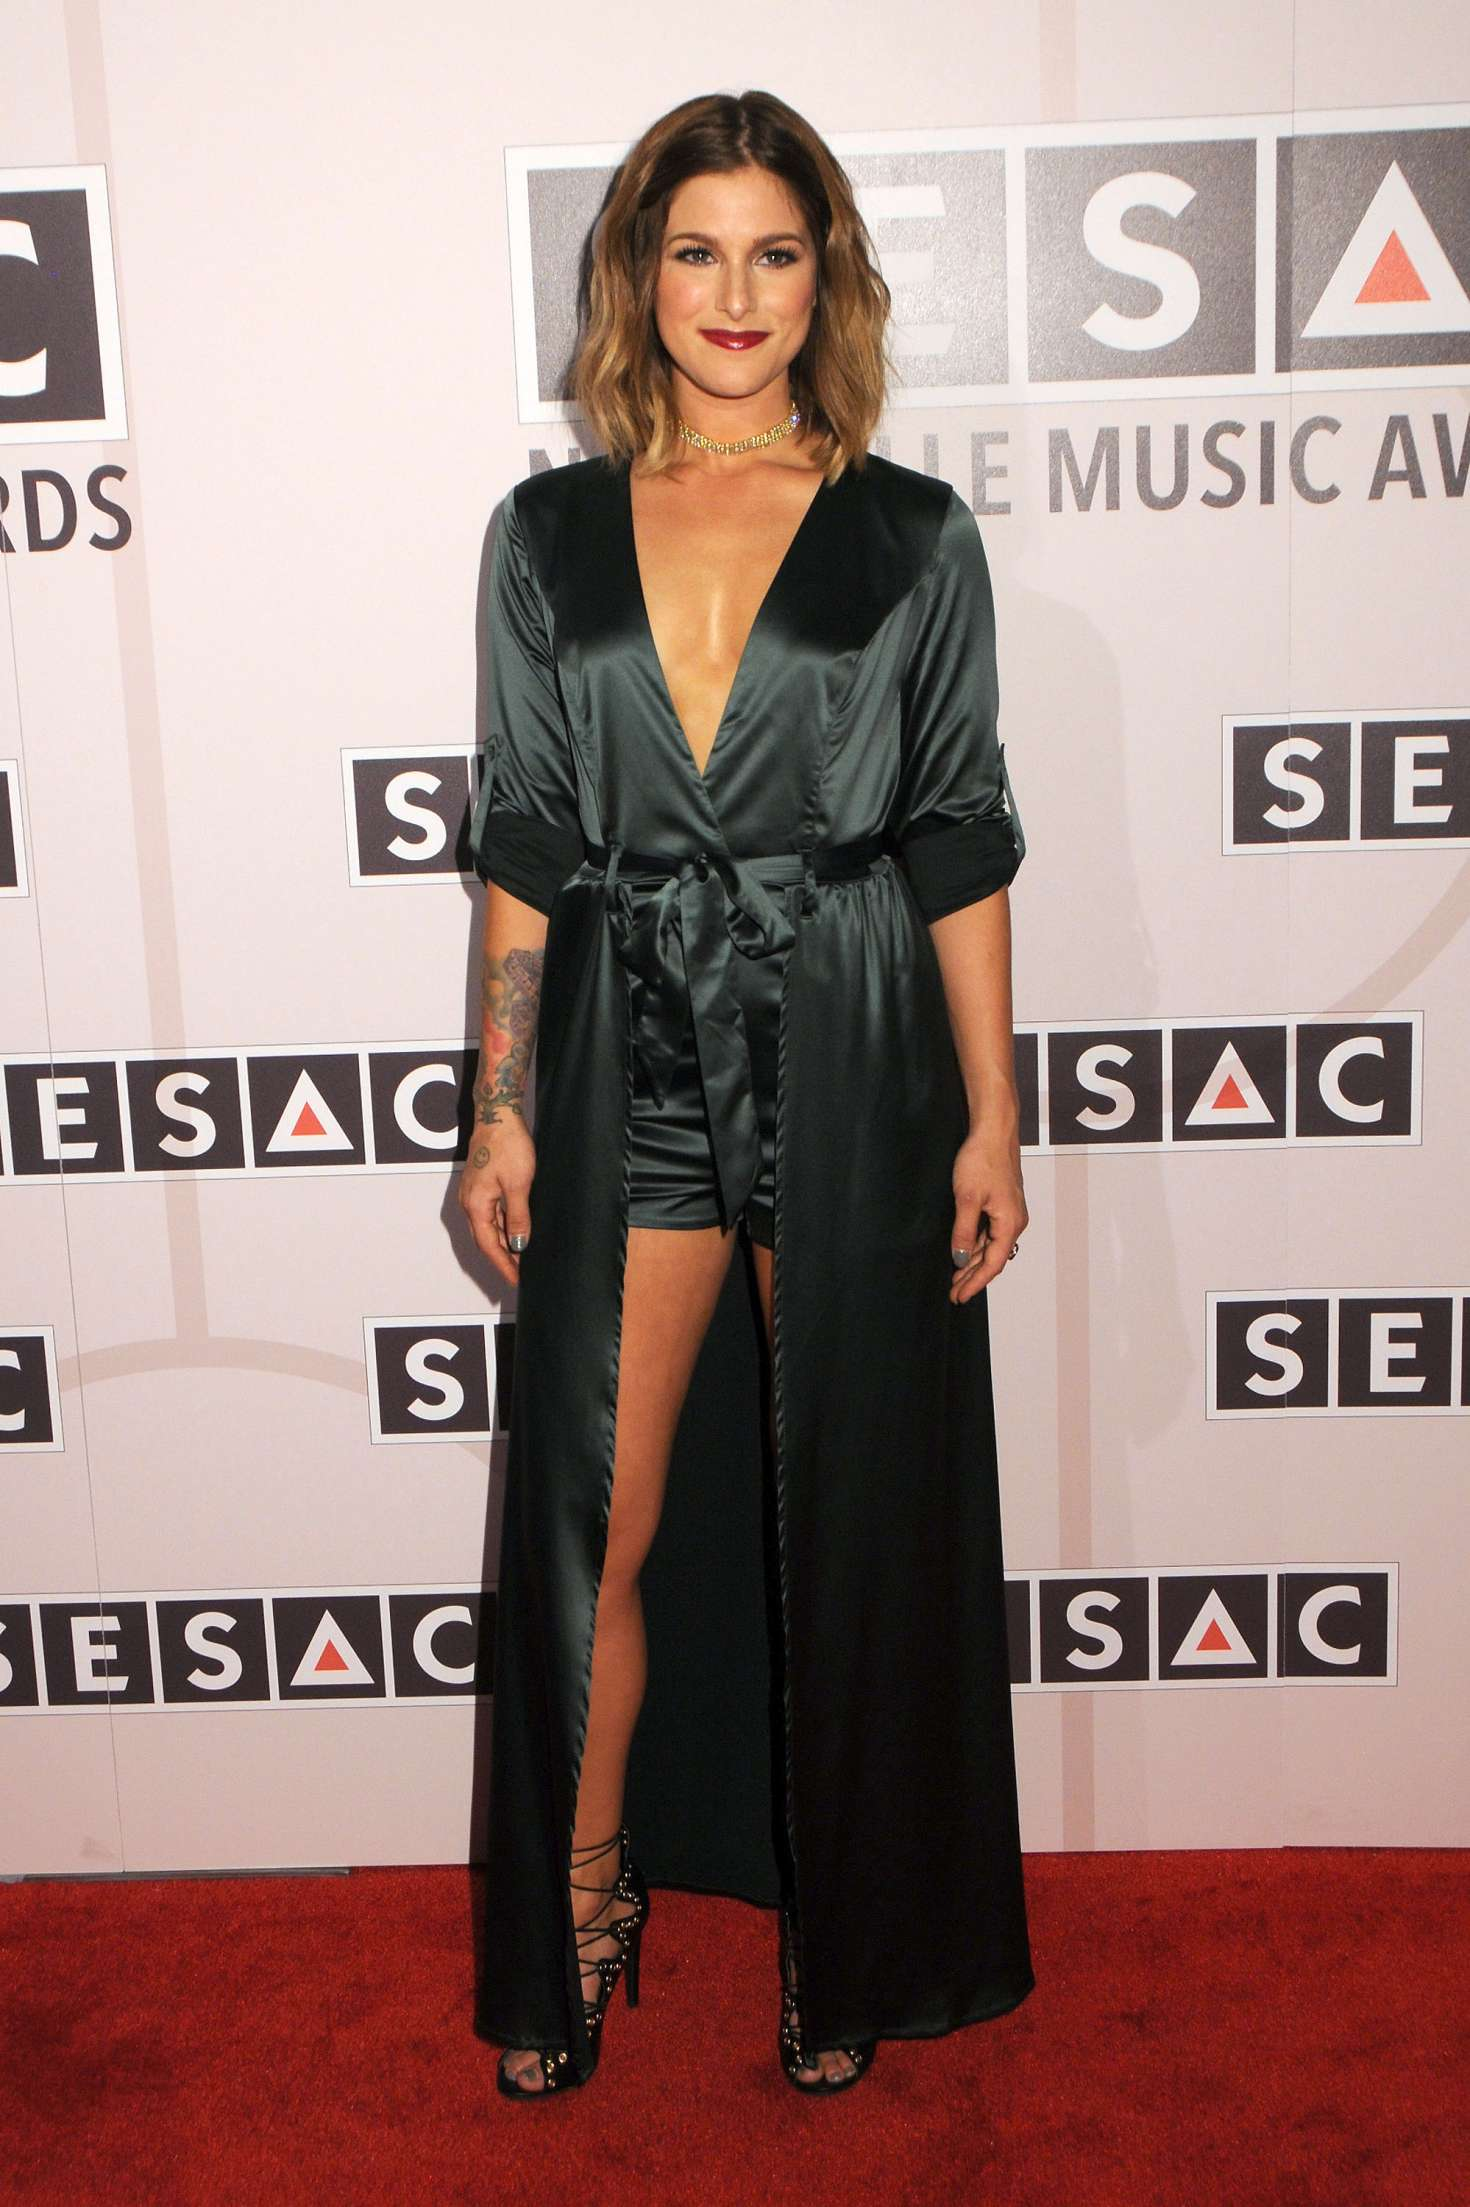 Cassadee Pope - SESAC Nashville Music Awards 2016 in Nashville